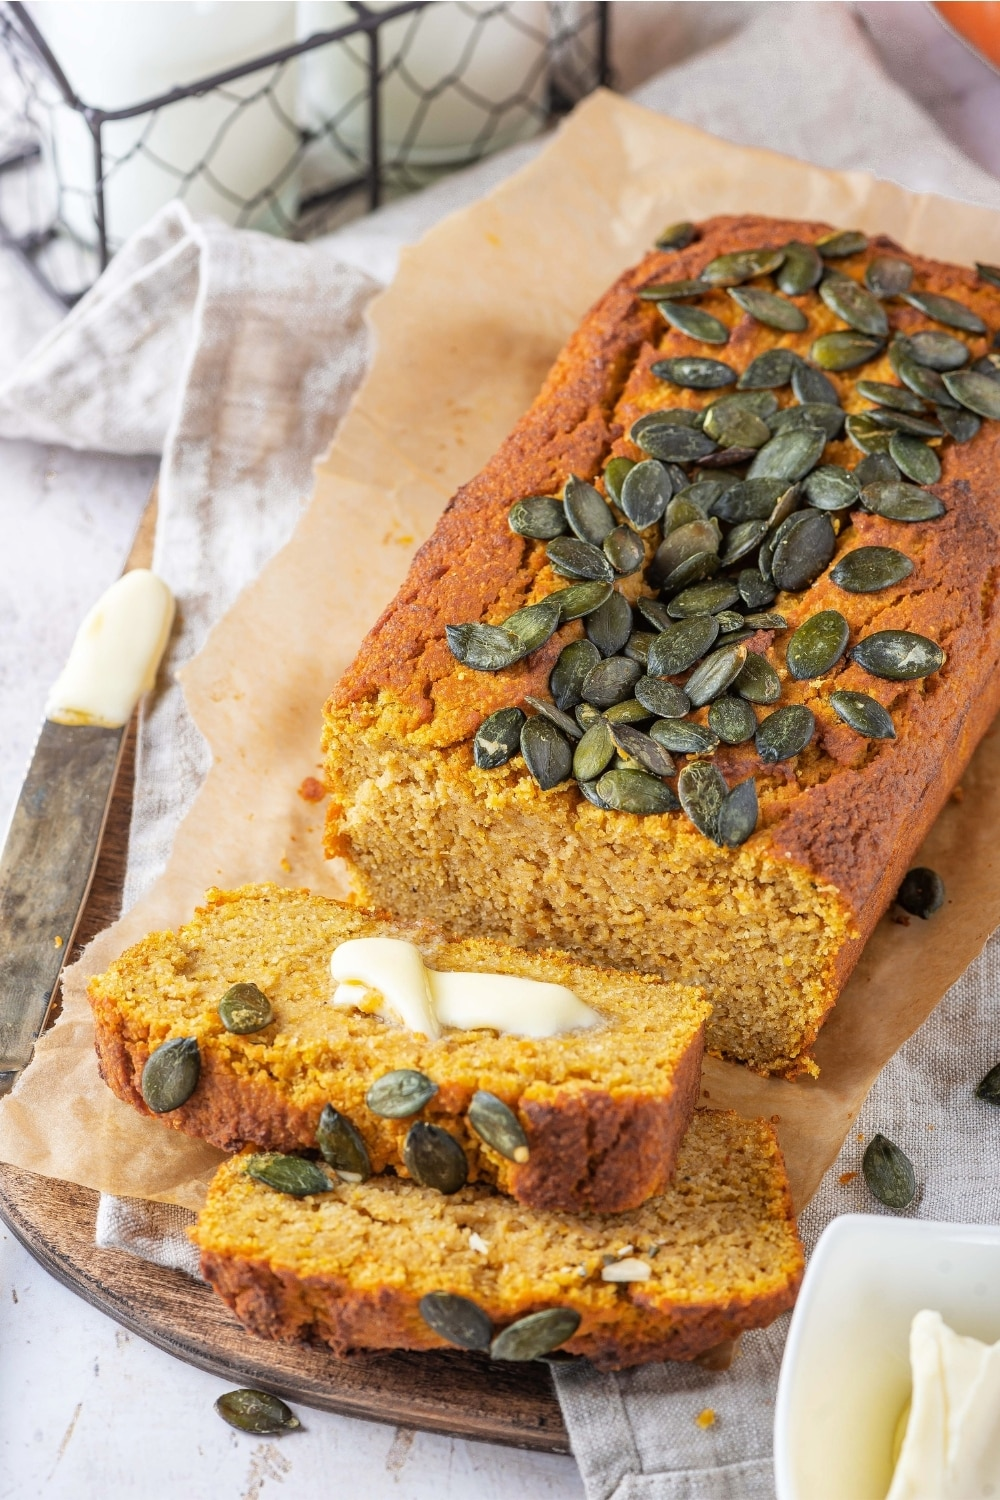 A loaf of pumpkin bread and a piece of parchment paper on a and a tablecloth that is on a wood board on the white counter. There are two slices of pumpkin bread line against one another in front of the loaf.